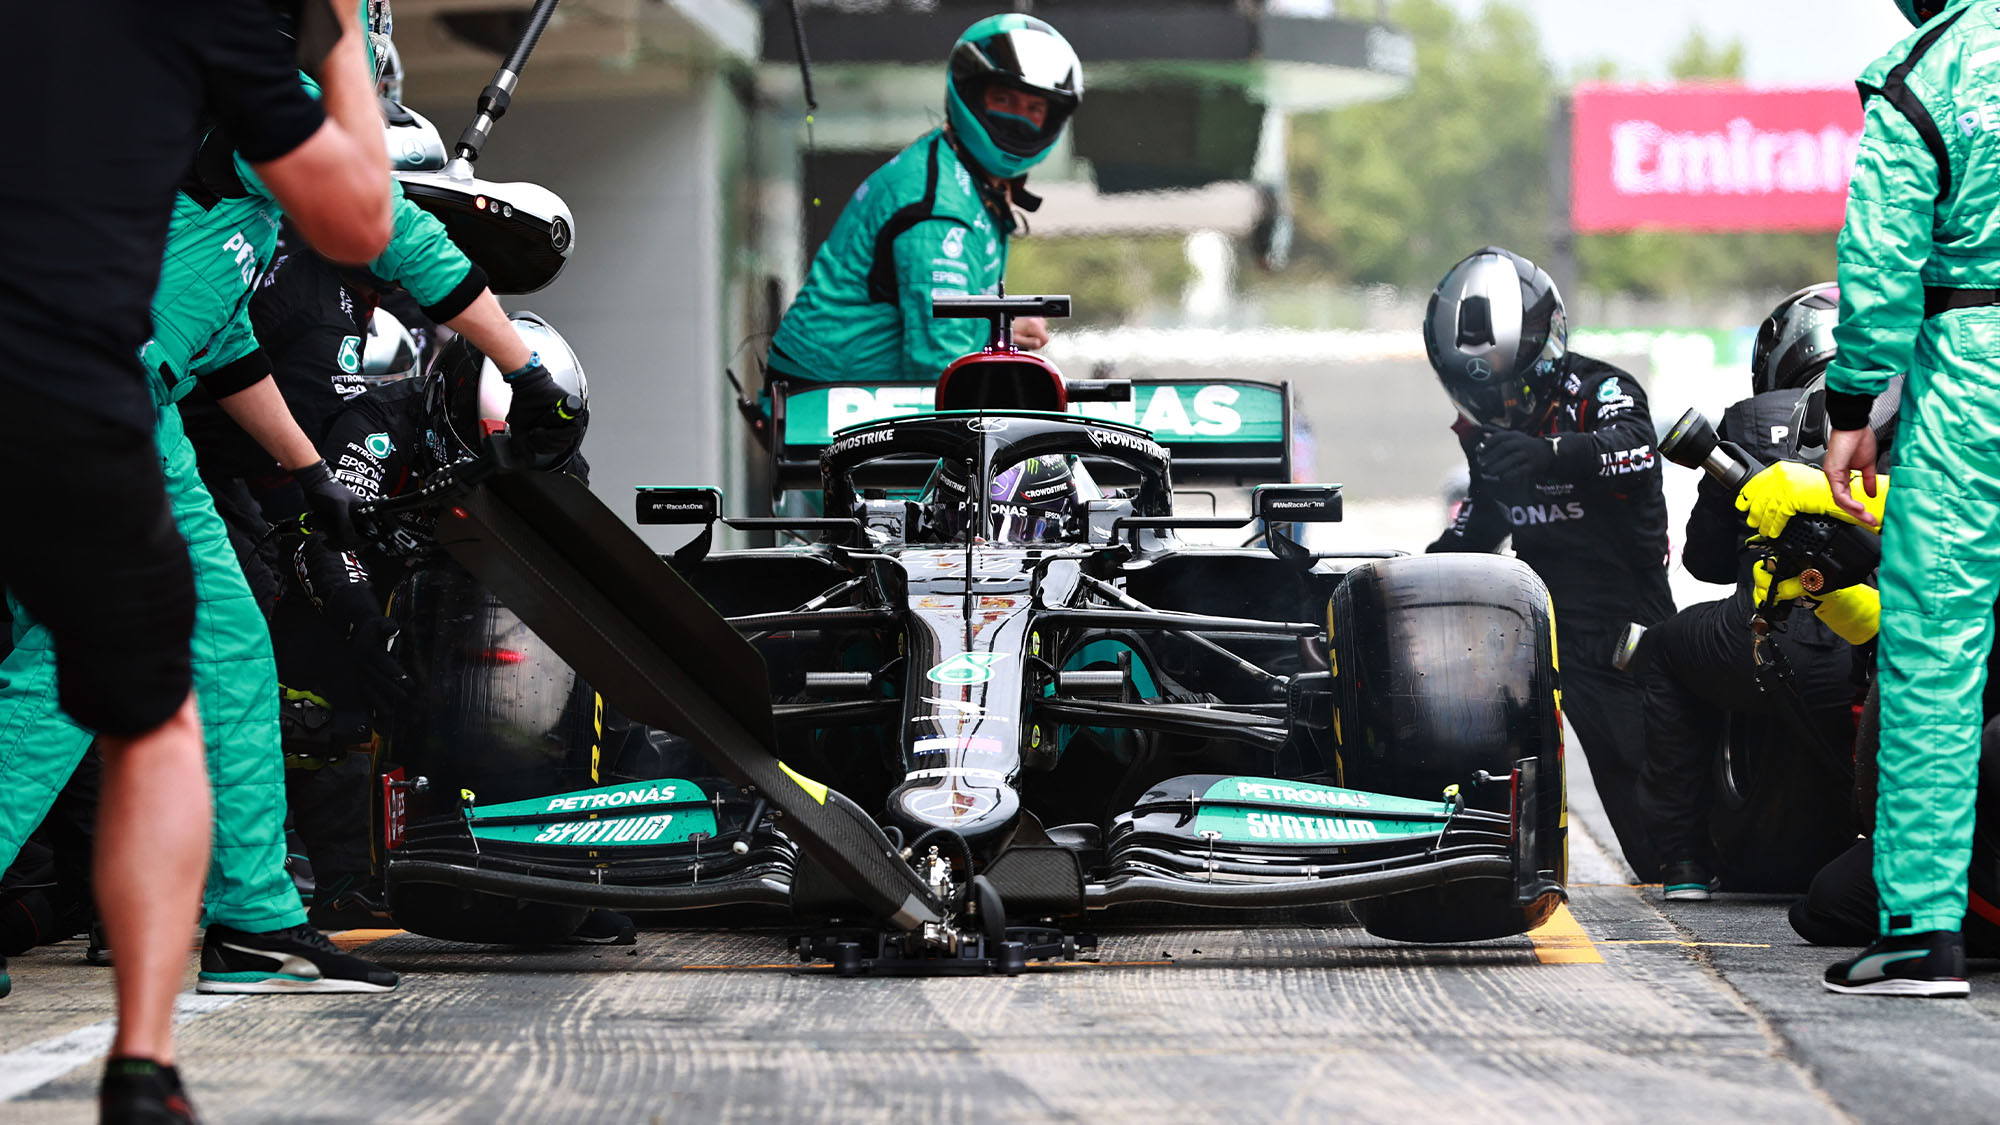 BARCELONA, SPAIN - MAY 09: Lewis Hamilton of Great Britain driving the (44) Mercedes AMG Petronas F1 Team Mercedes W12 makes a pitstop during the F1 Grand Prix of Spain at Circuit de Barcelona-Catalunya on May 09, 2021 in Barcelona, Spain. (Photo by Mark Thompson/Getty Images)